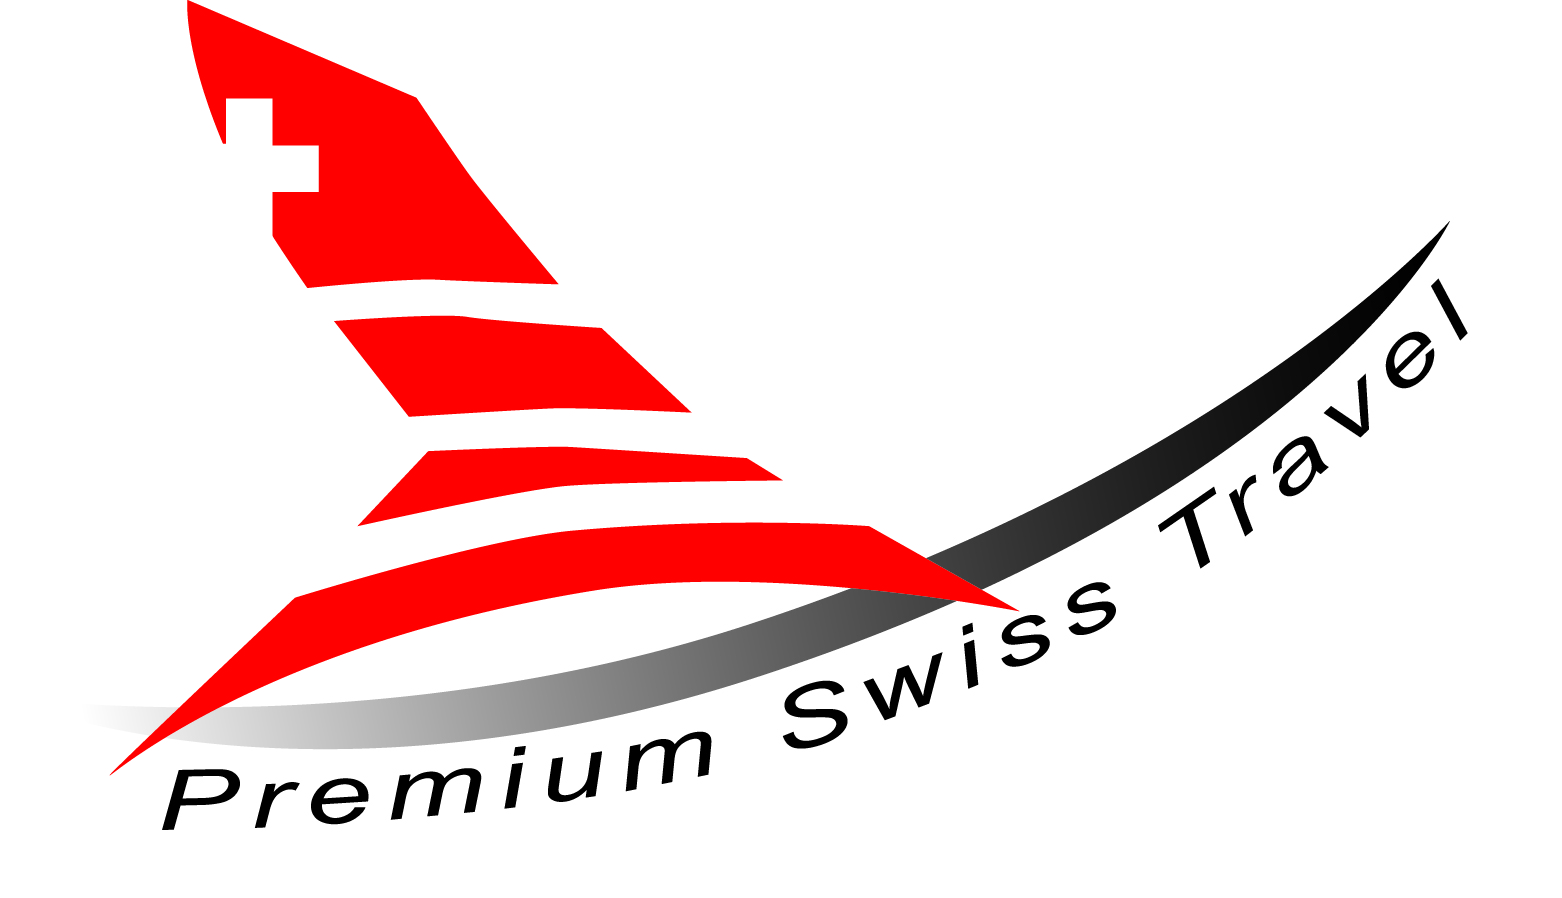 Premium Swiss Travel | Manual Archives - Premium Swiss Travel